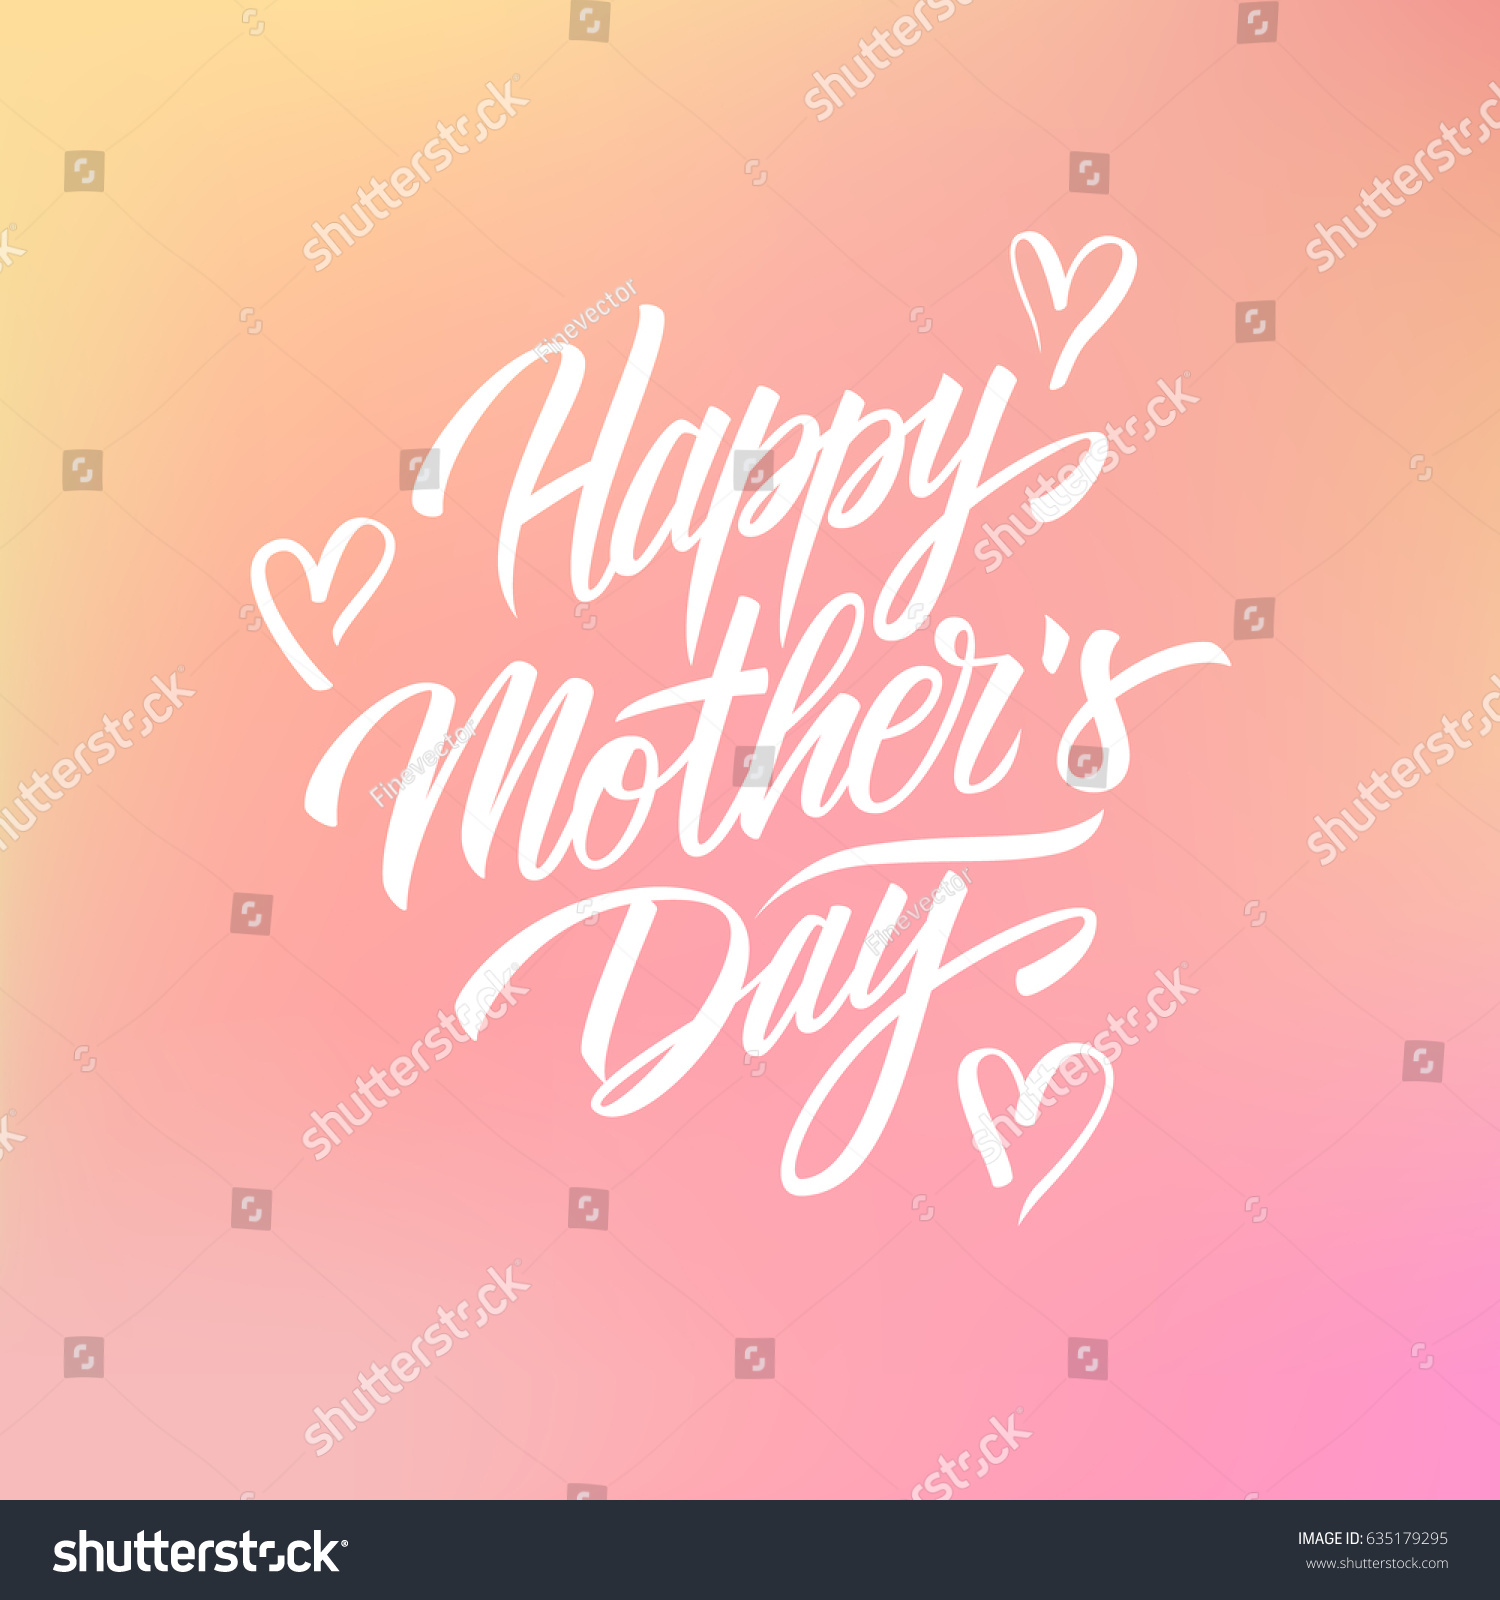 Happy mothers day greeting card calligraphic stock vector 635179295 happy mothers day greeting card with calligraphic lettering text design on blurred background creative template kristyandbryce Choice Image